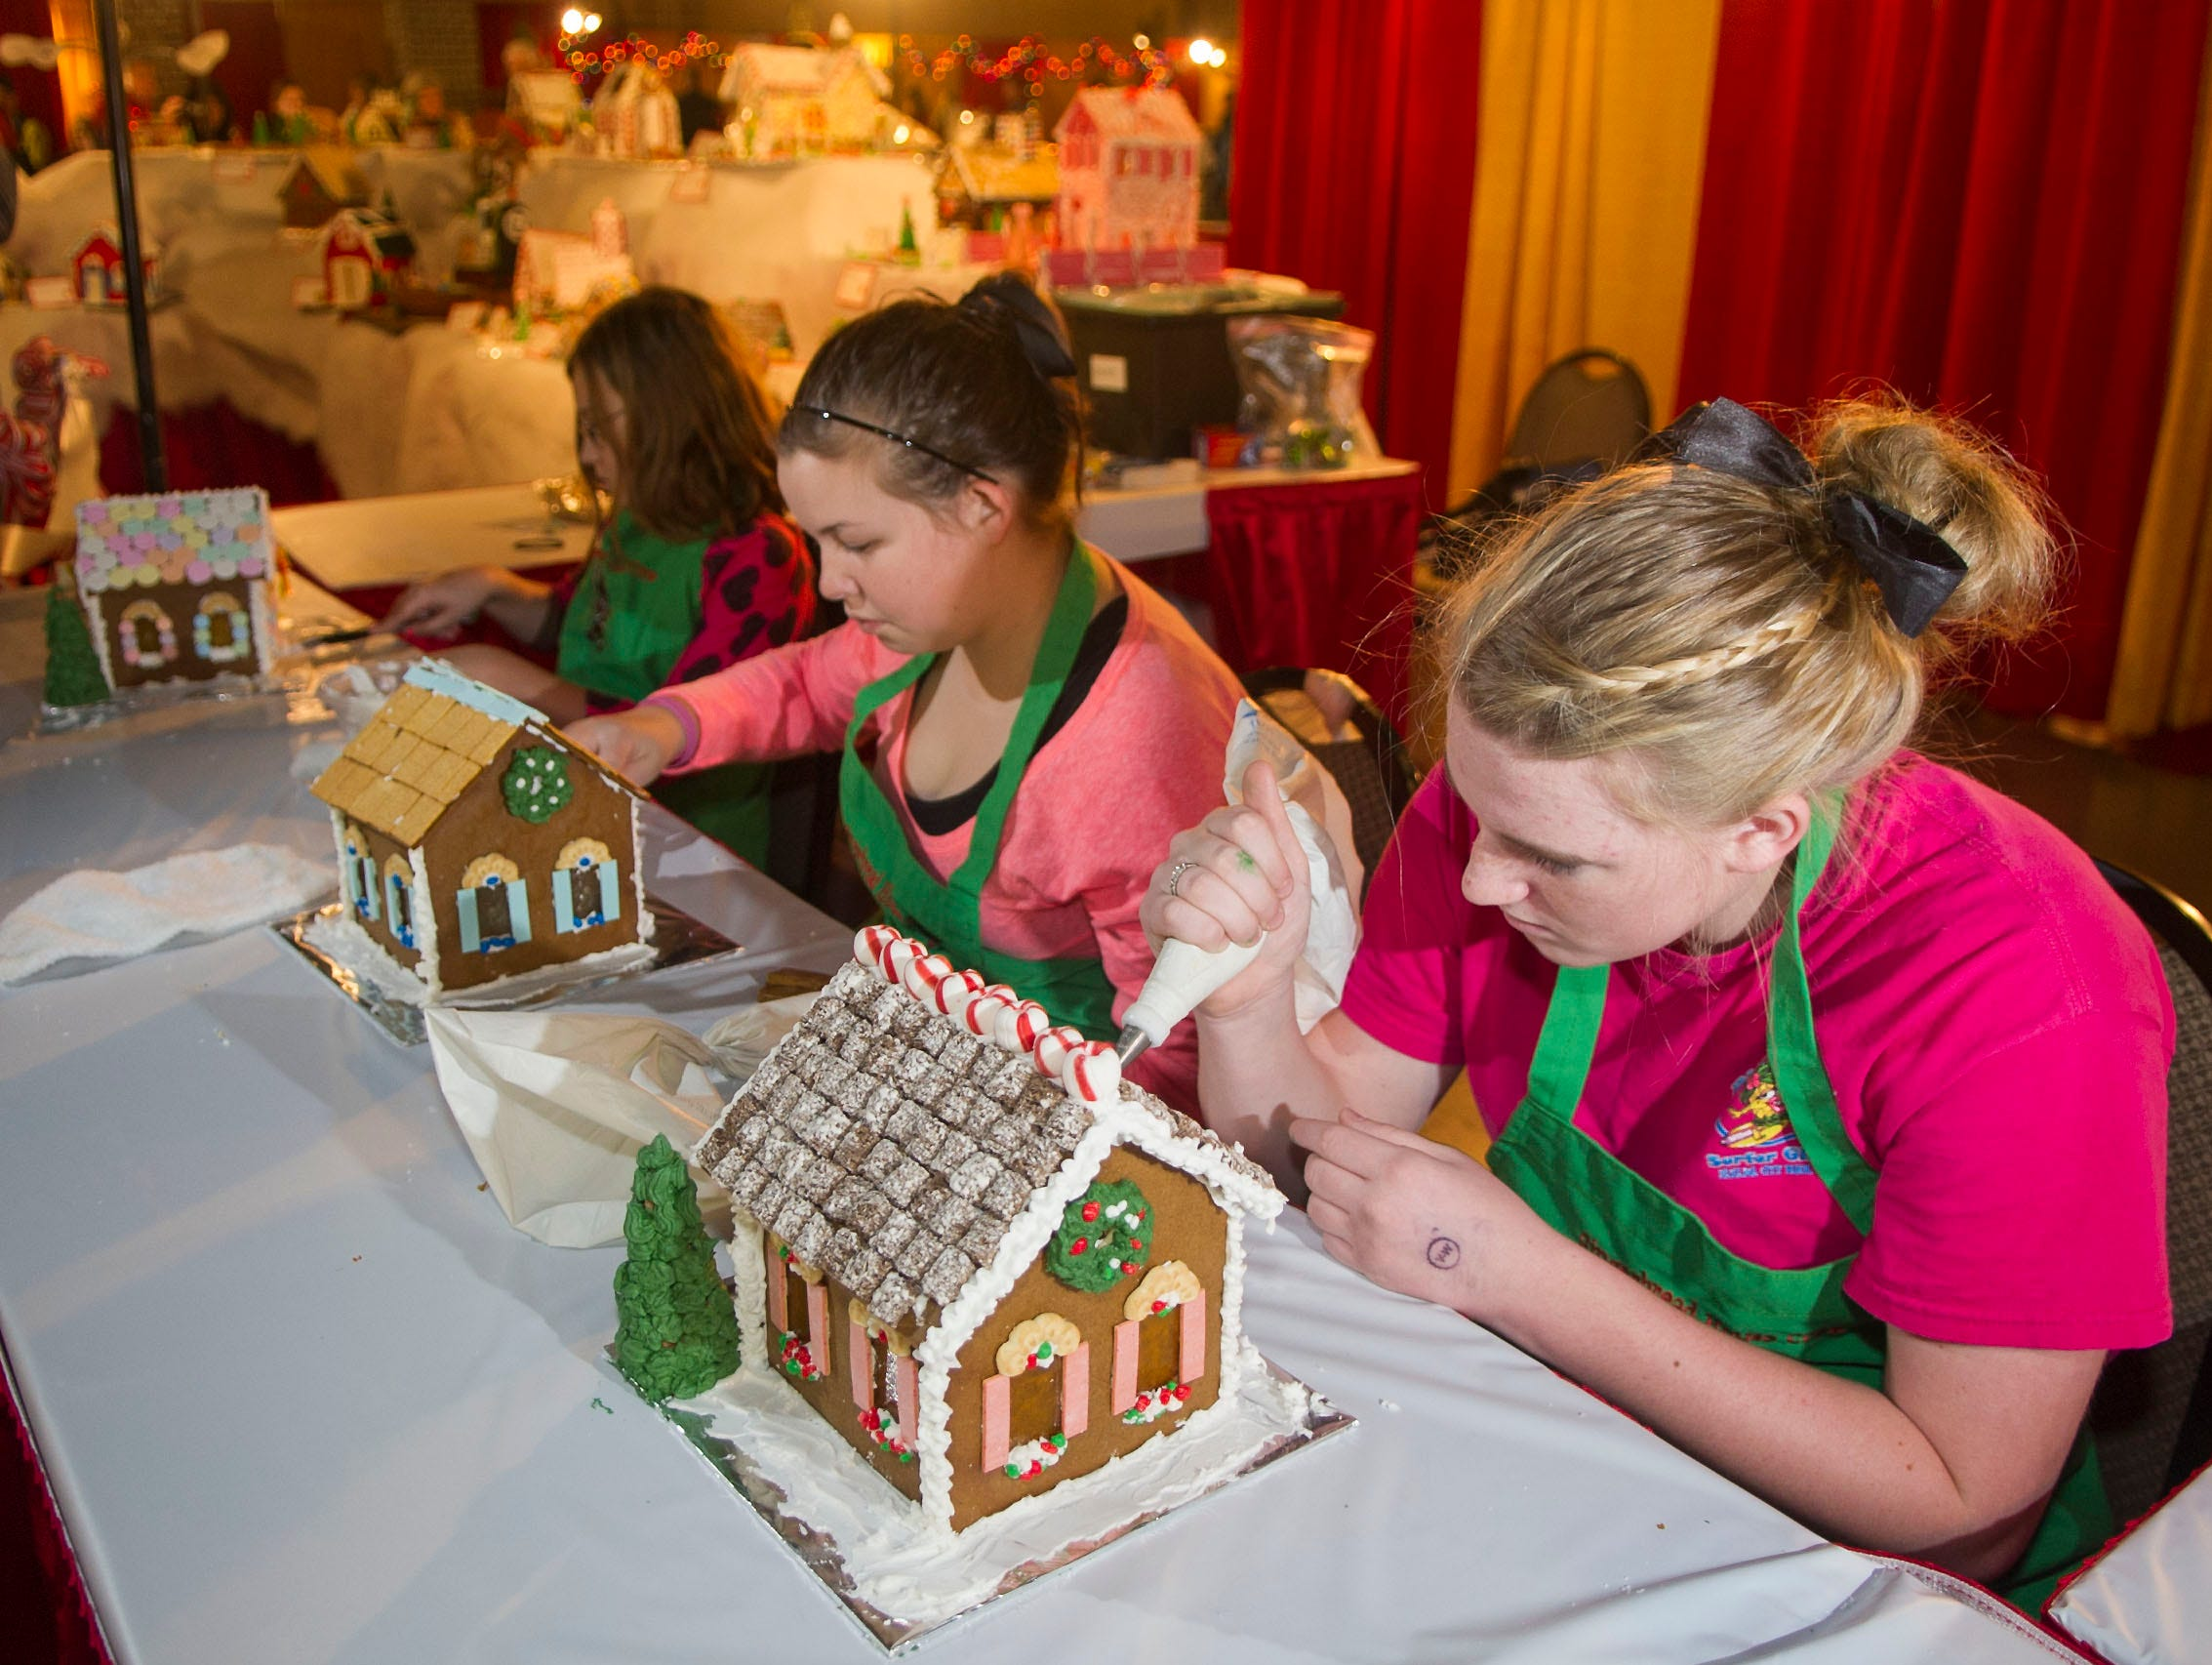 Students from Greenback schools create gingerbread houses at the Fantasy of Trees.   The students started after Halloween making trees and continue making gingerbread housed throughout the event.Amanda Spafford, 11, left, Brittany Clark, 14 center, and Emily Spafford, 15, right.The 28th Fantasy of Trees once again transforms the downtown Knoxville Convention Center into a winter wonderland of decorated trees, gingerbread houses, holiday shops and children's activities, helping move Thanksgiving week into the Christmas season. ( J. MILES CARY/NEWS SENTINEL )